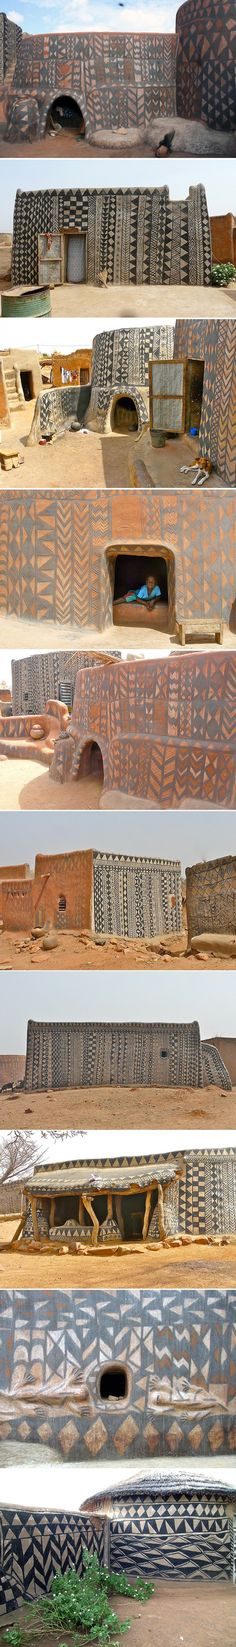 Painted in Burkina Faso Houses - Journal of Design